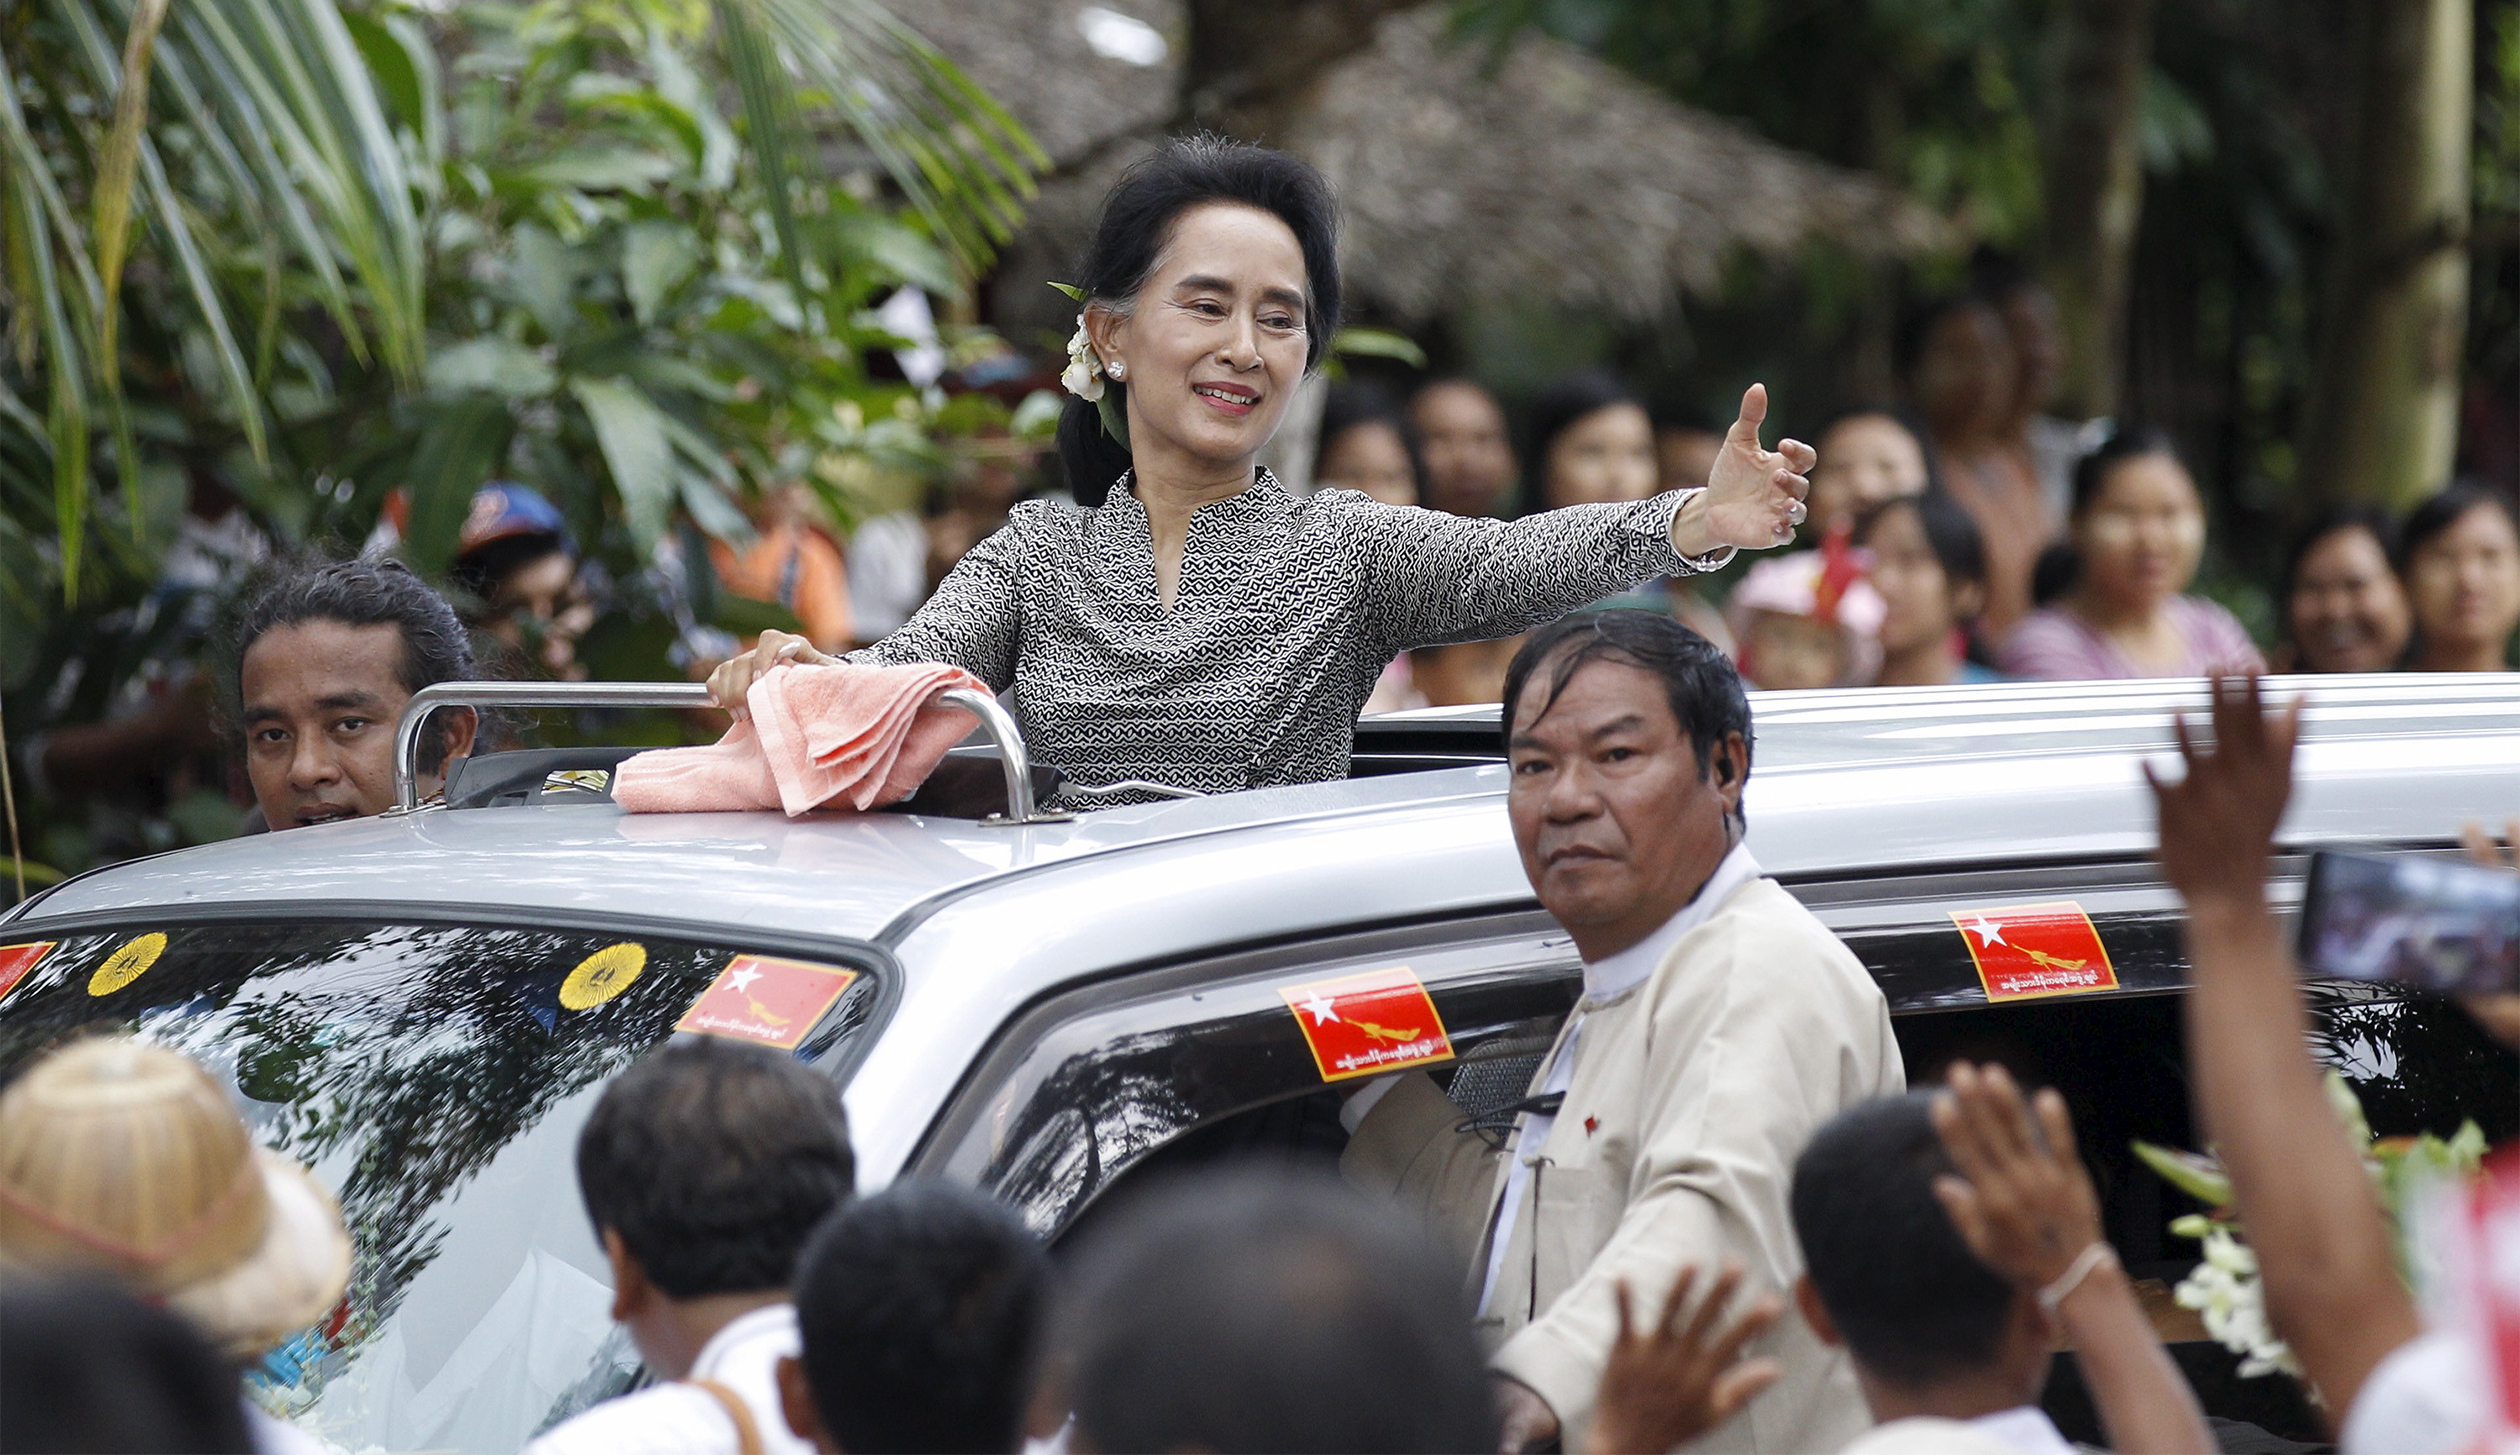 Myanmar pro-democracy leader Aung San Suu Kyi waves to supporters before giving a speech during her campaign in her constituency of Kawhmu township outside Yangon